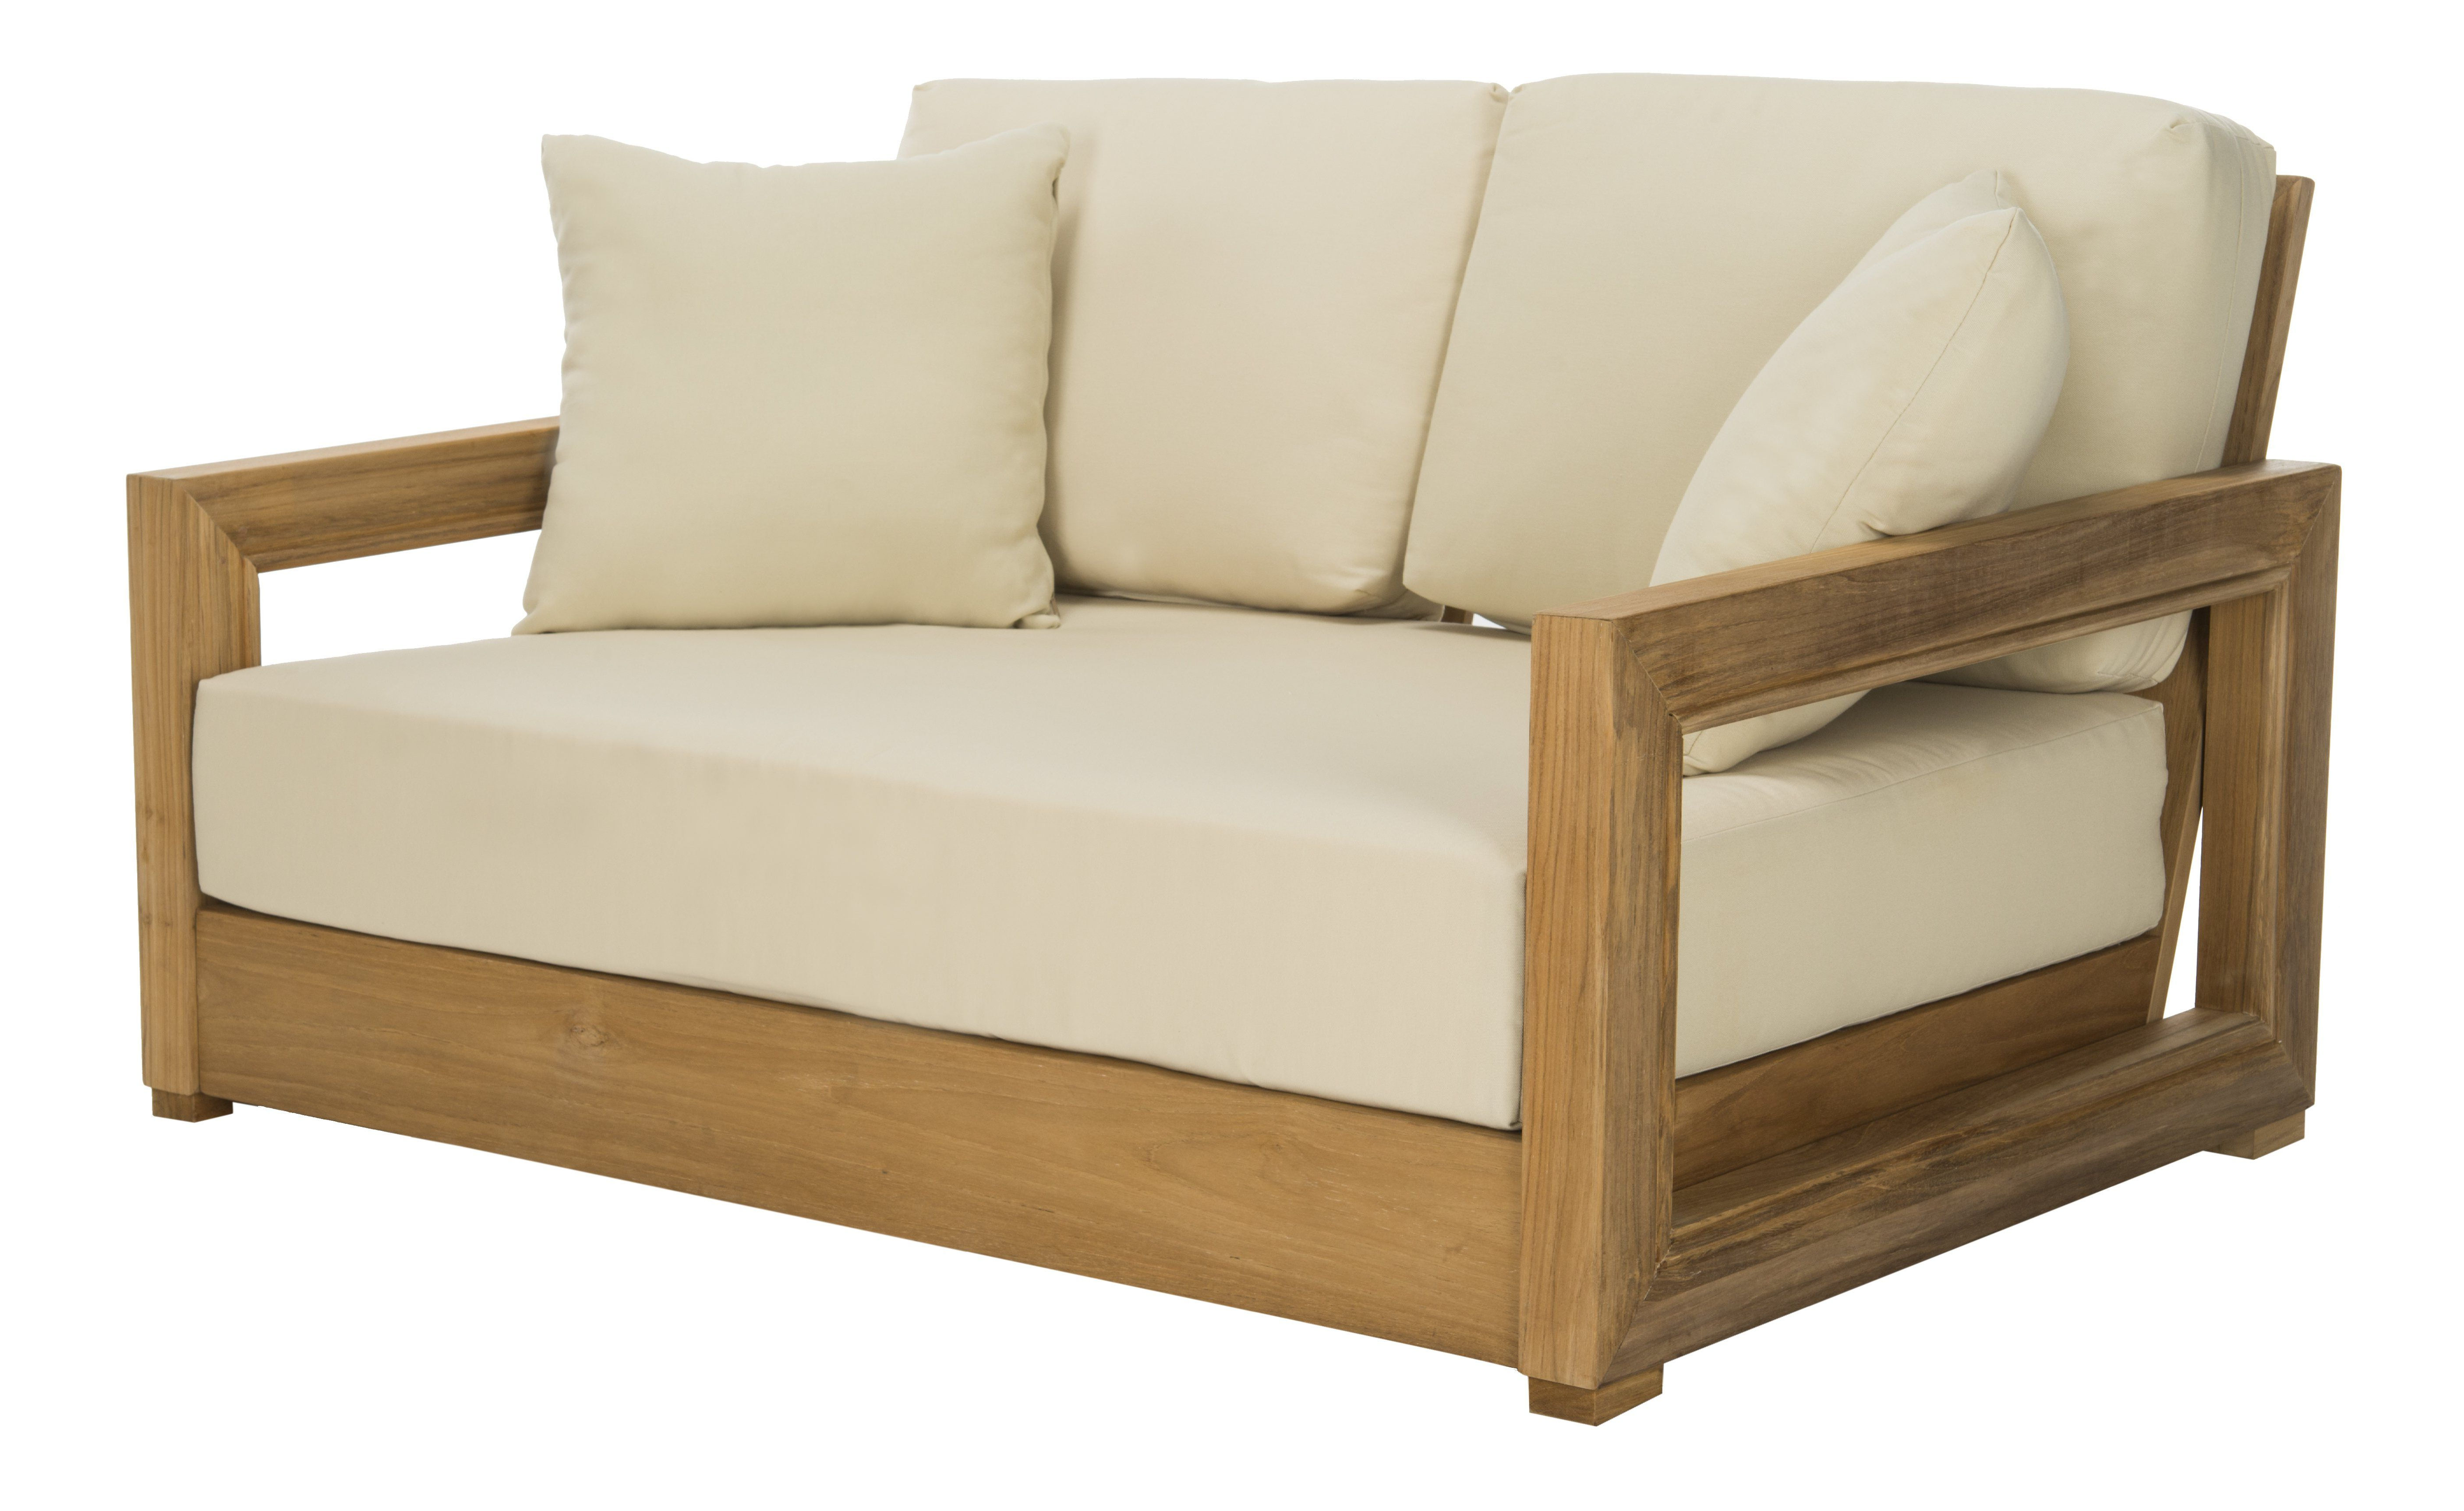 Well Liked Montford Teak Loveseats With Cushions With Lakeland Teak Loveseat With Cushions (View 19 of 20)